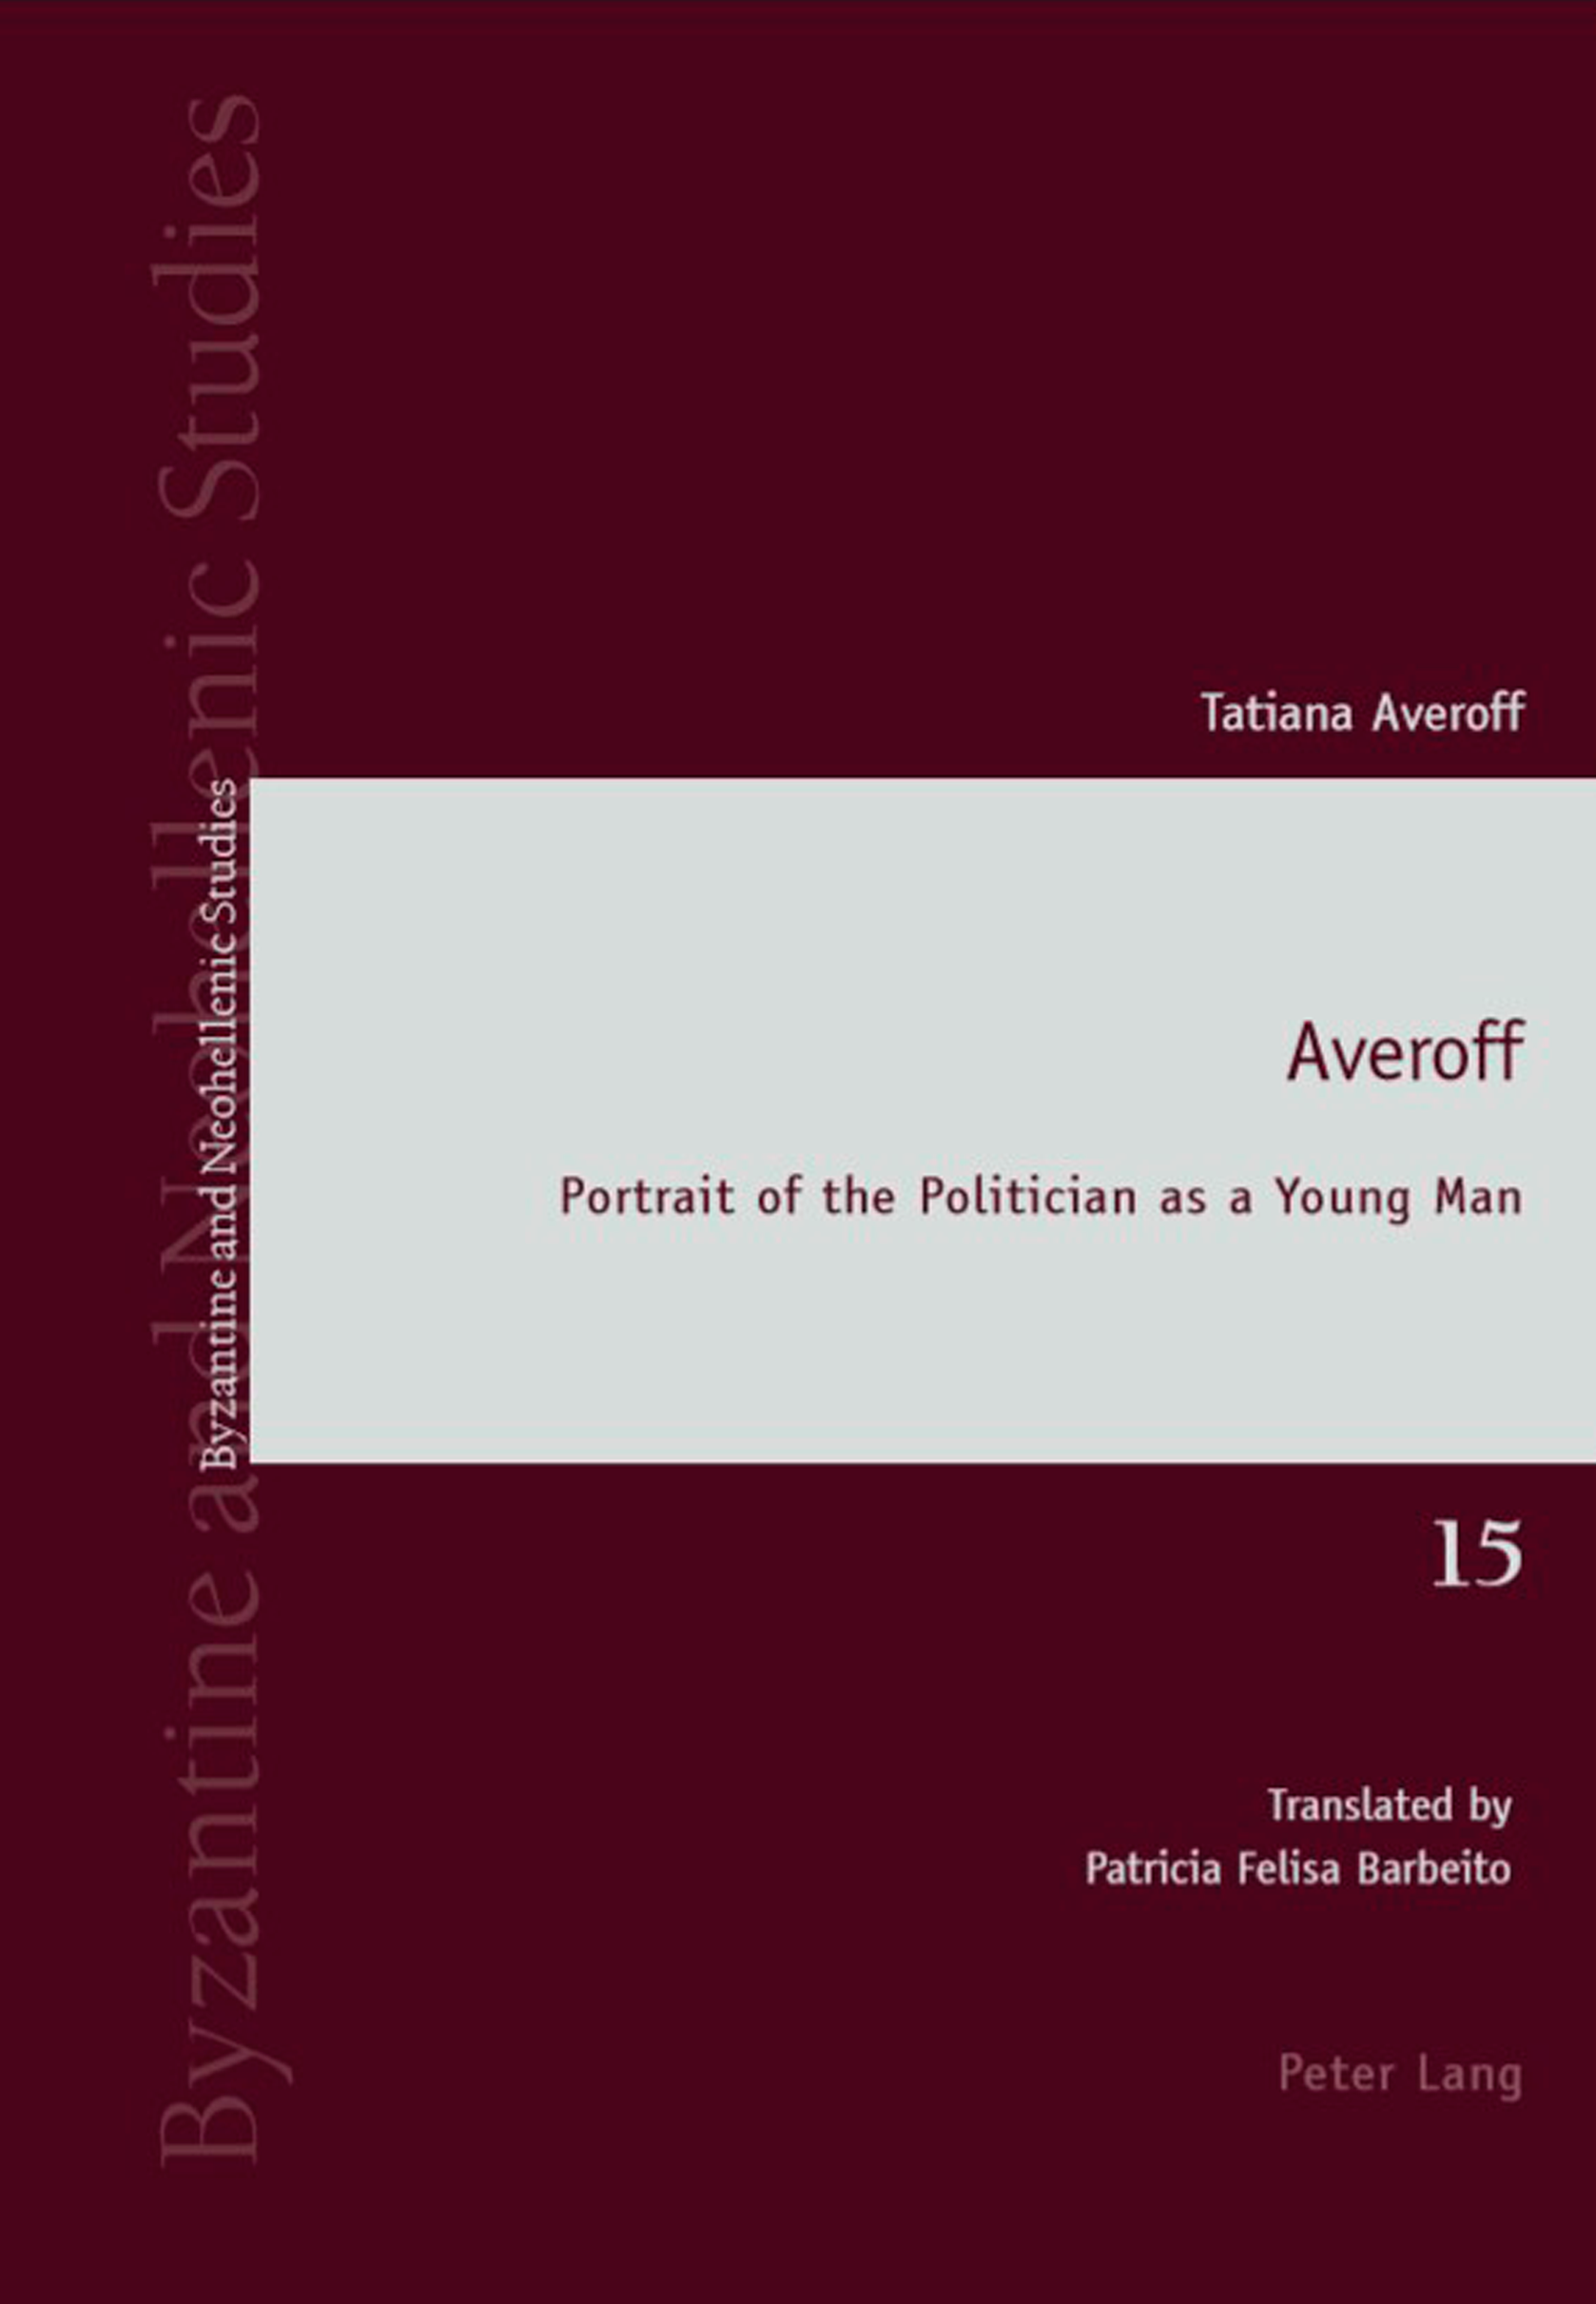 Averoff: Portrait of the Politician as a Young Man Published by Peter Lang LTD, 2018, pp 384, Translated by Patricia Felisa Barbeito